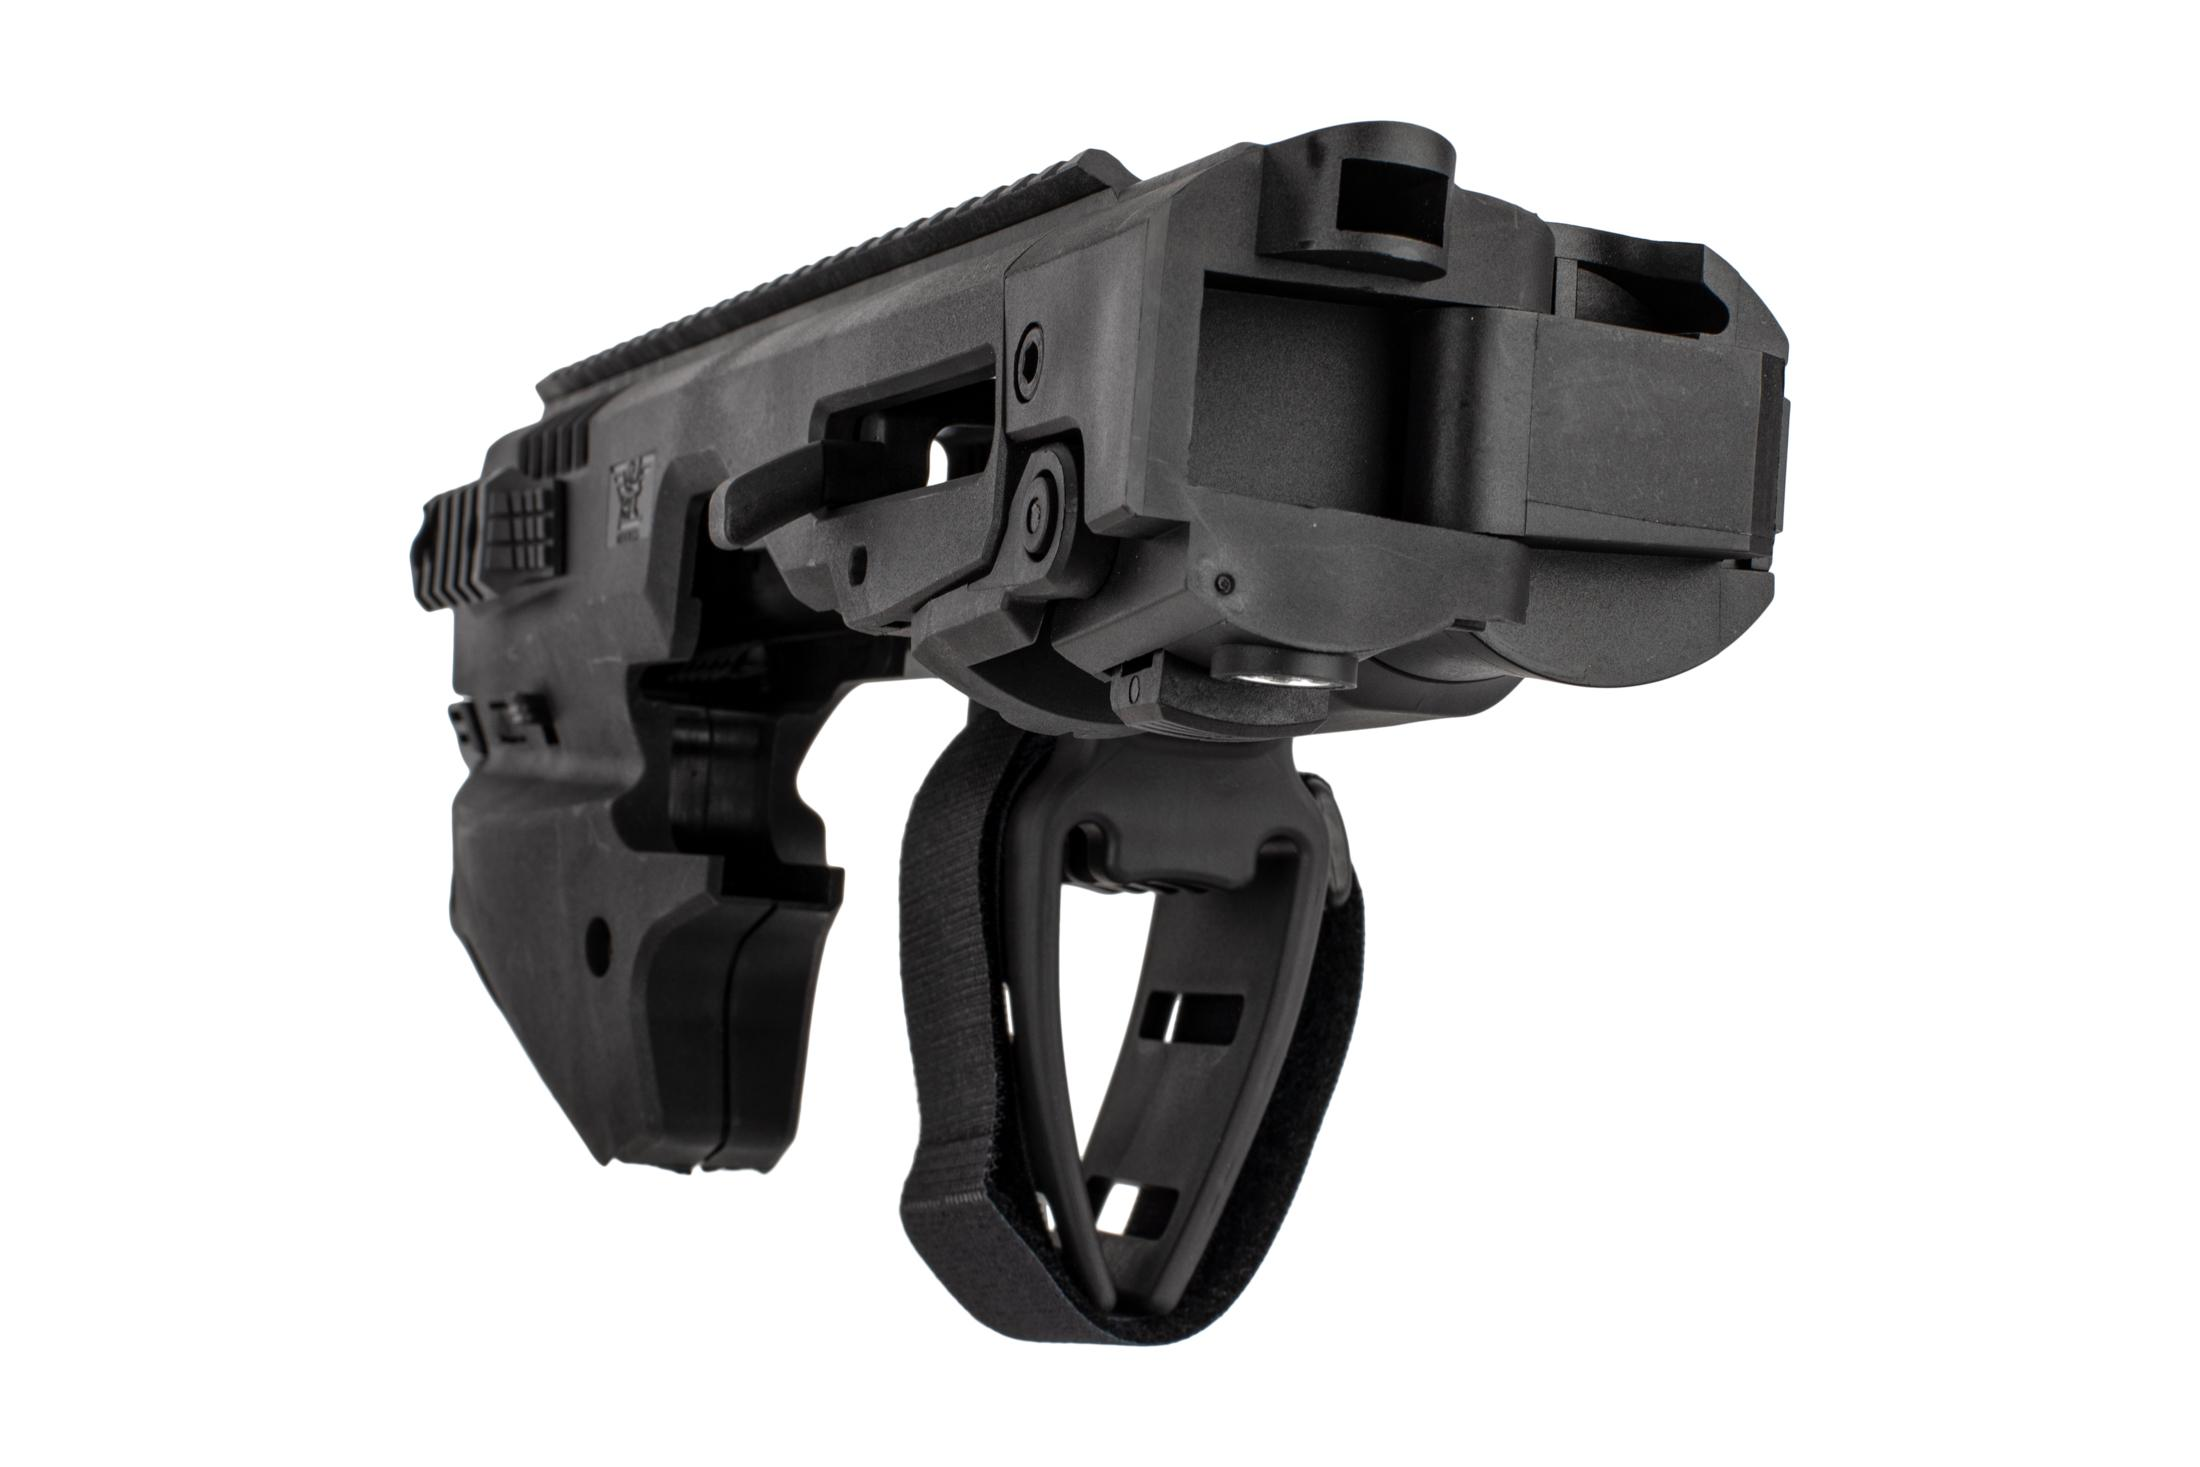 Command Arms Micro Conversion Kit for Glock 20/21s offers a side folding long stabilizer